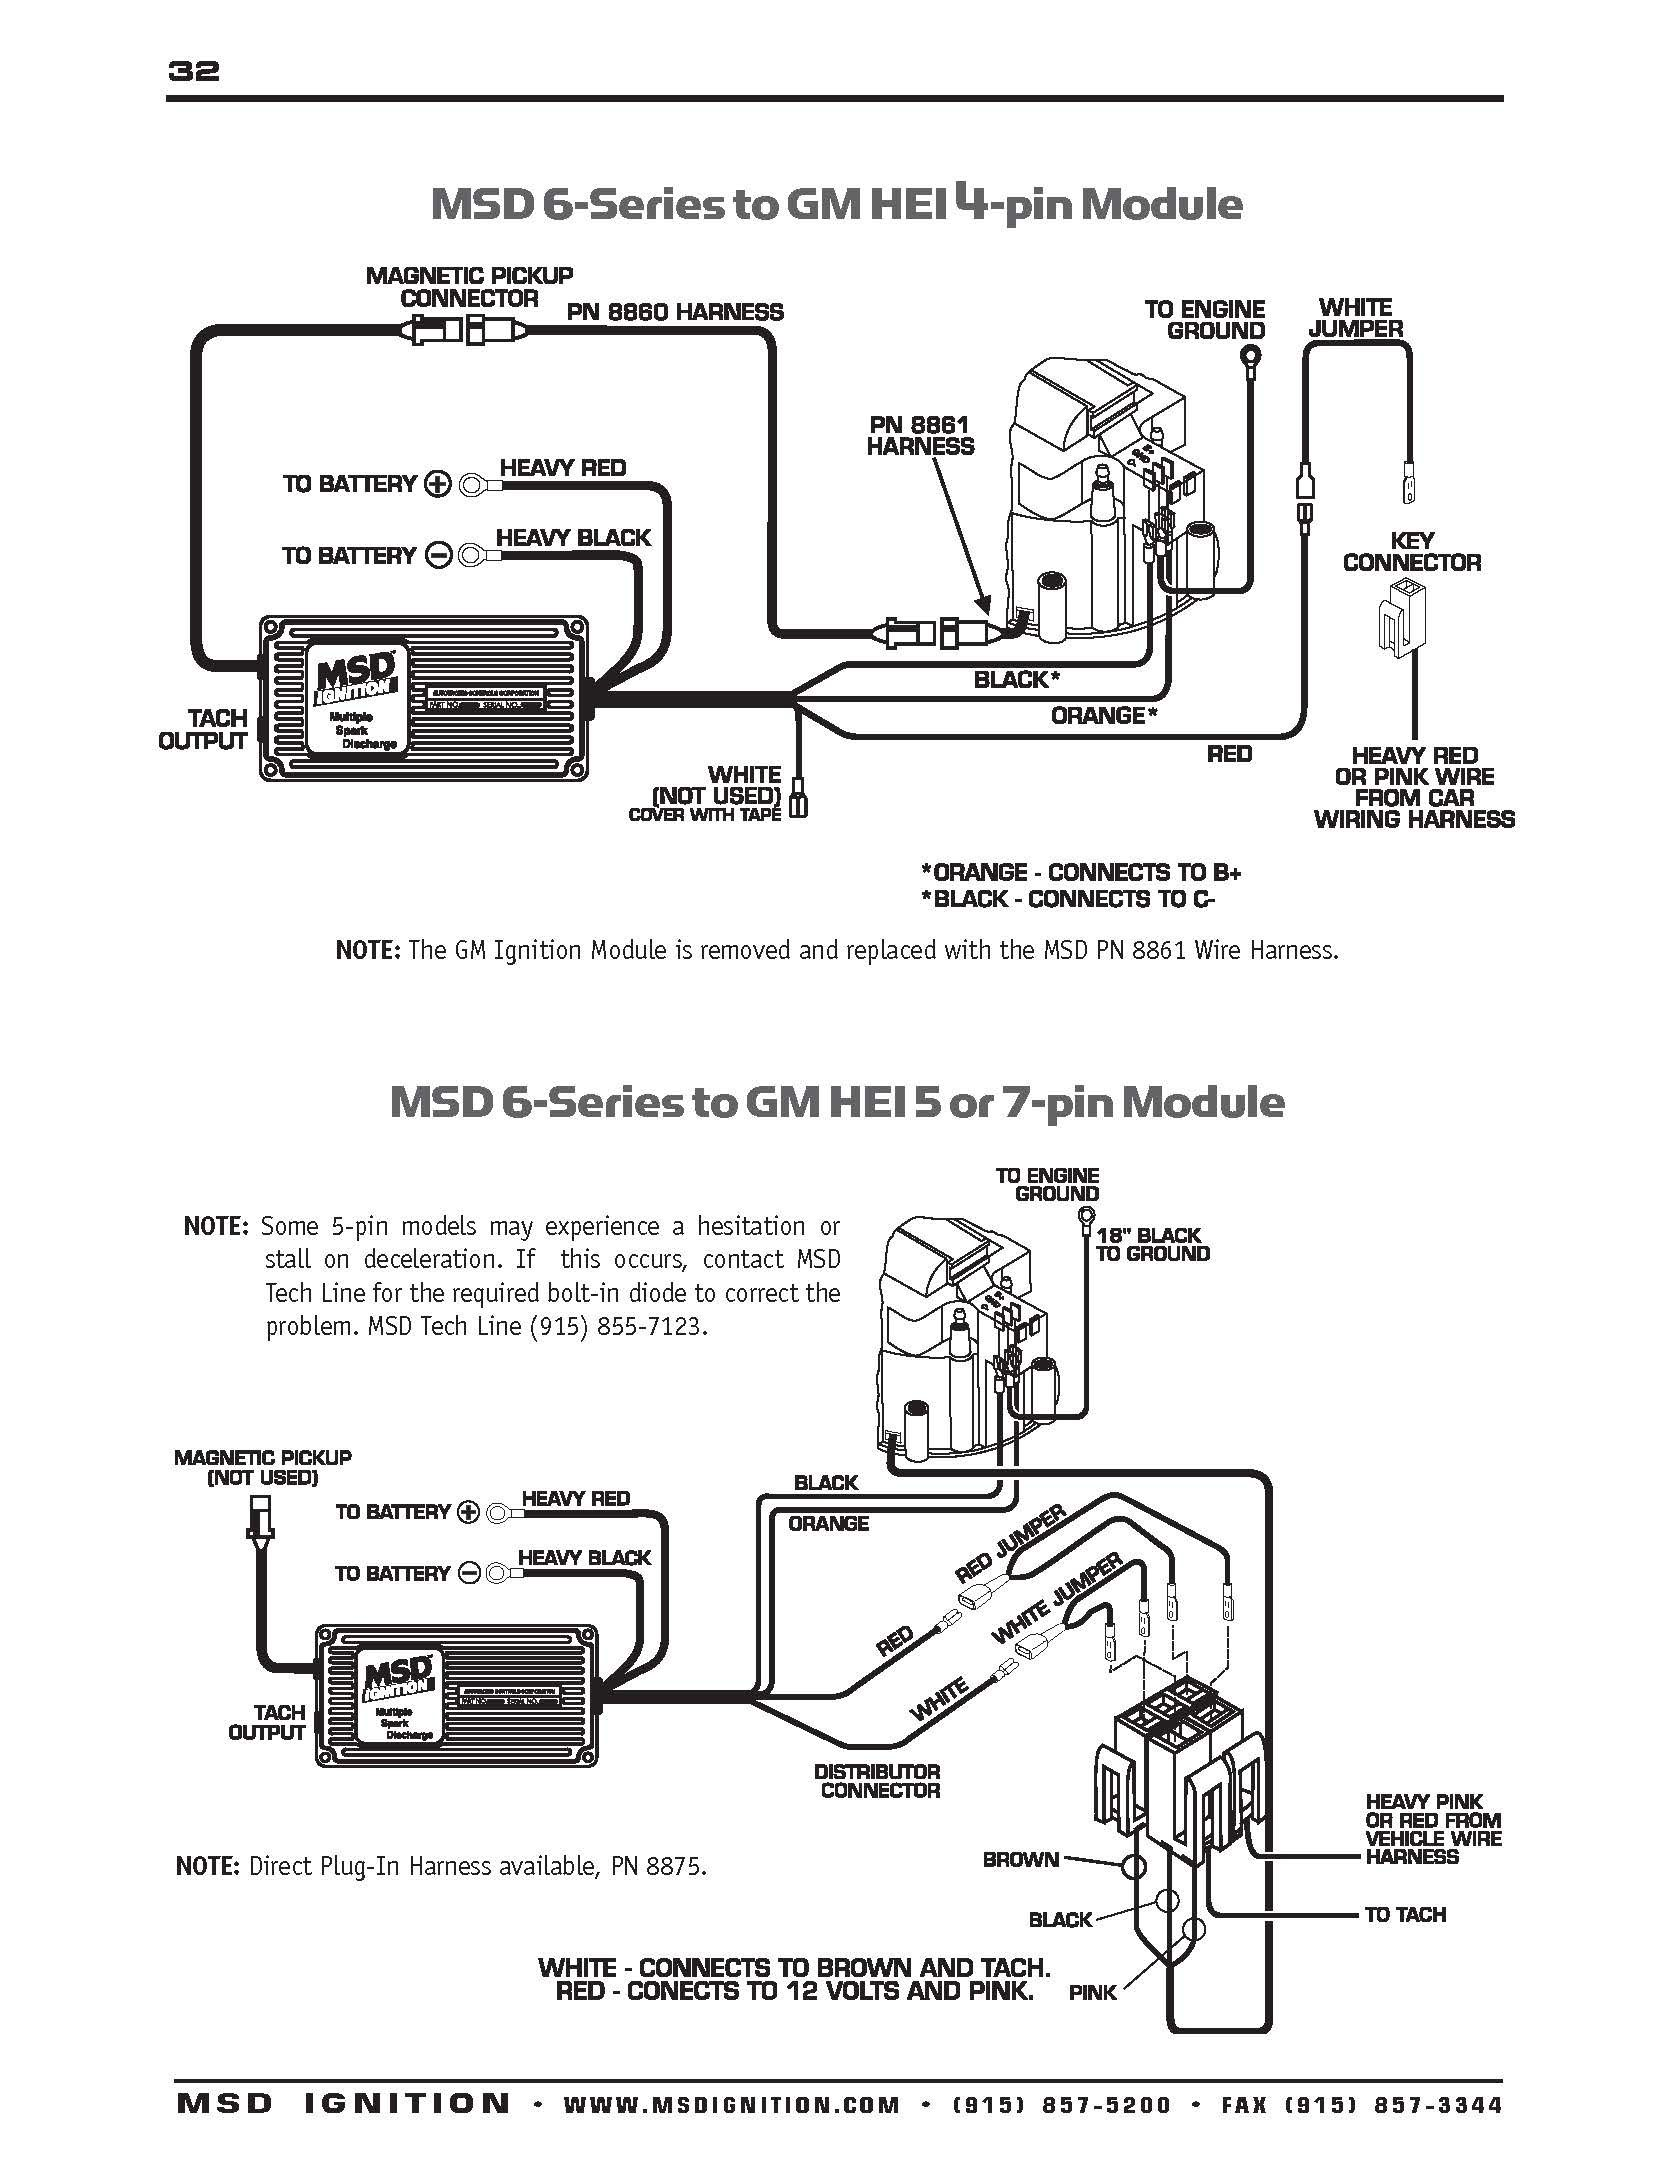 msd 6a wiring diagram dodge 5 2l magnum msd ignition wiring diagrams | 1966 chevelle | pinterest ... msd 5 wiring diagram #3